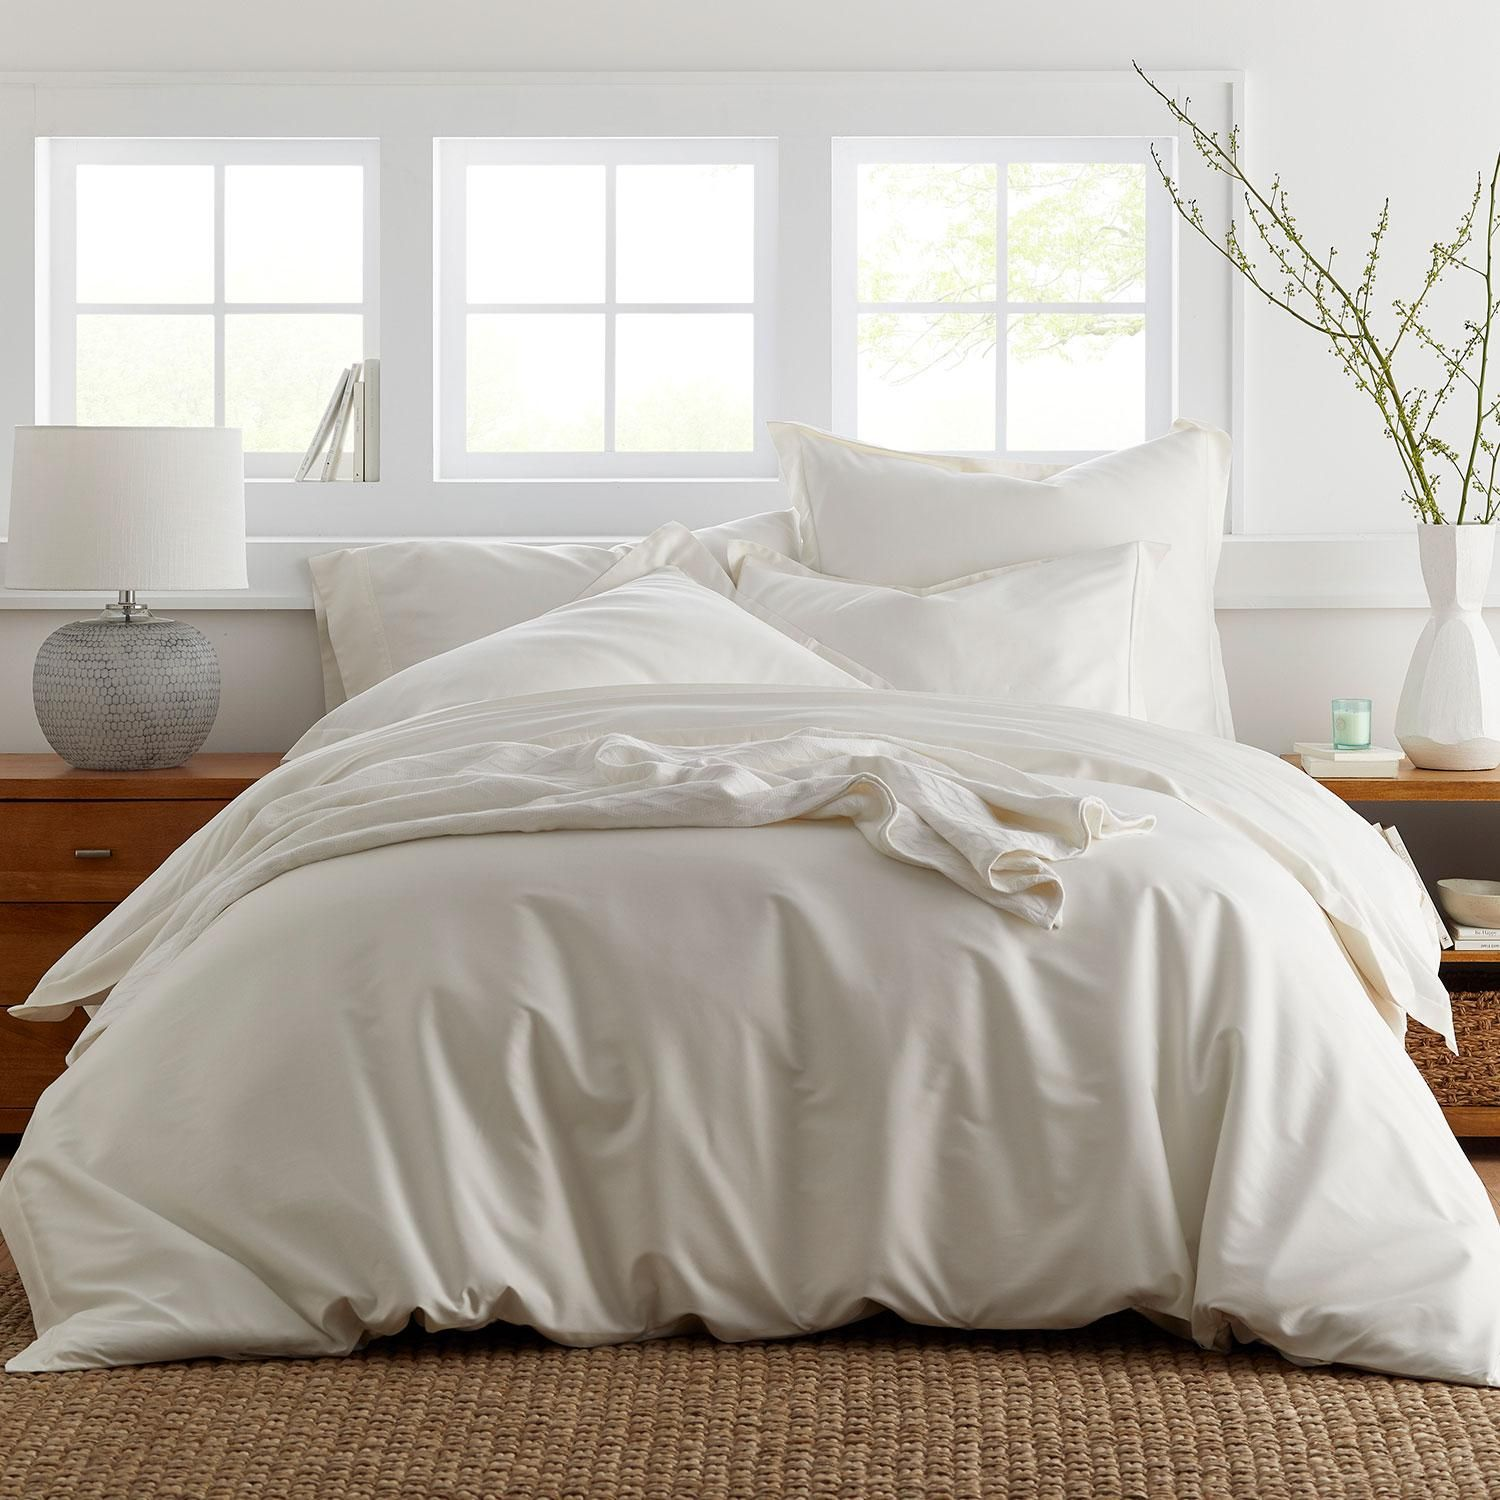 A Buying Guide For The Comforter Cover 11 Bed Linens Luxury Bed